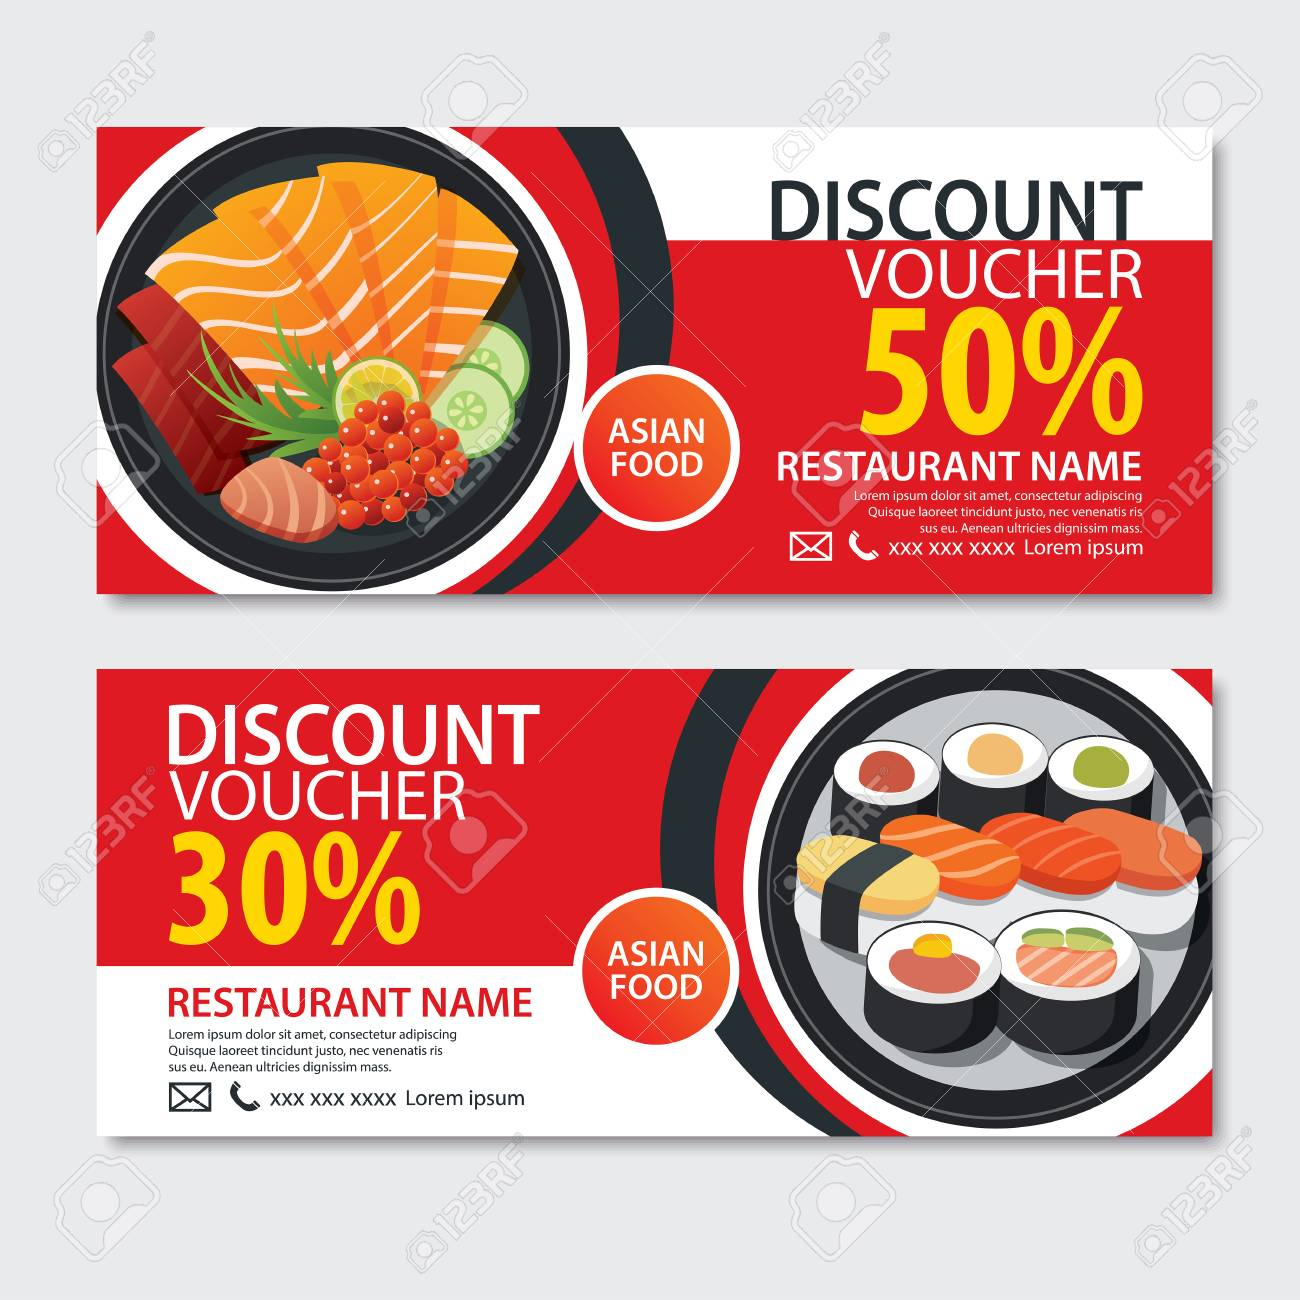 Food Discount Poster